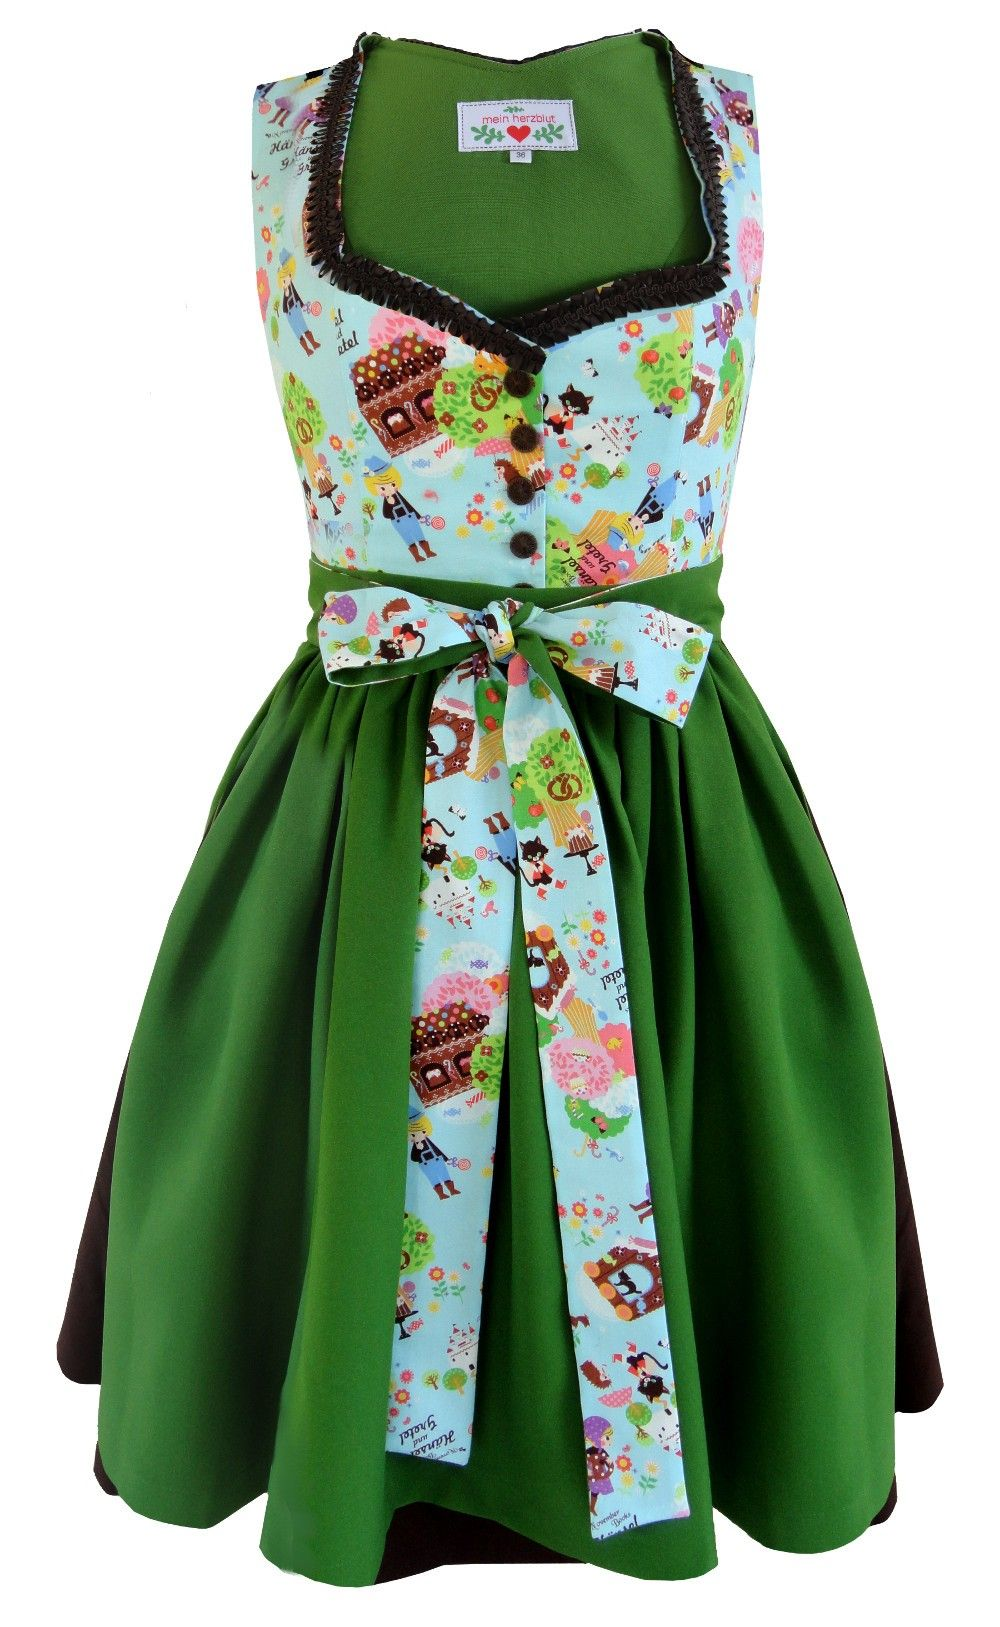 78feb7aabb305 Gretel dirndl, for the kitsch lovers out there like me. … | Dirndl ...